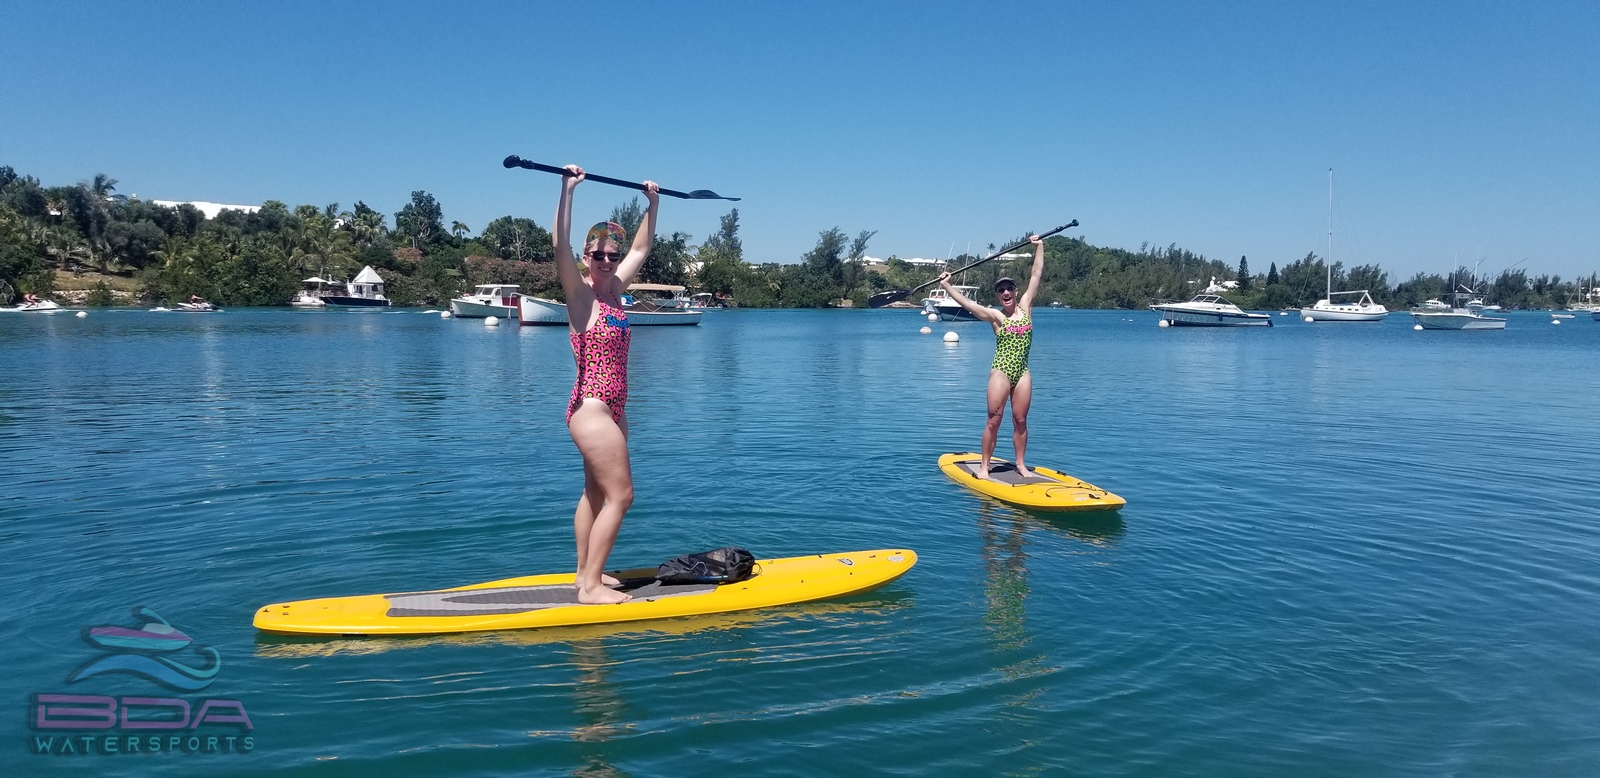 Gallery of Kayak and Paddle Boards Rentals in Bermuda <p>Kayaks and Paddle Boards in Action</p>